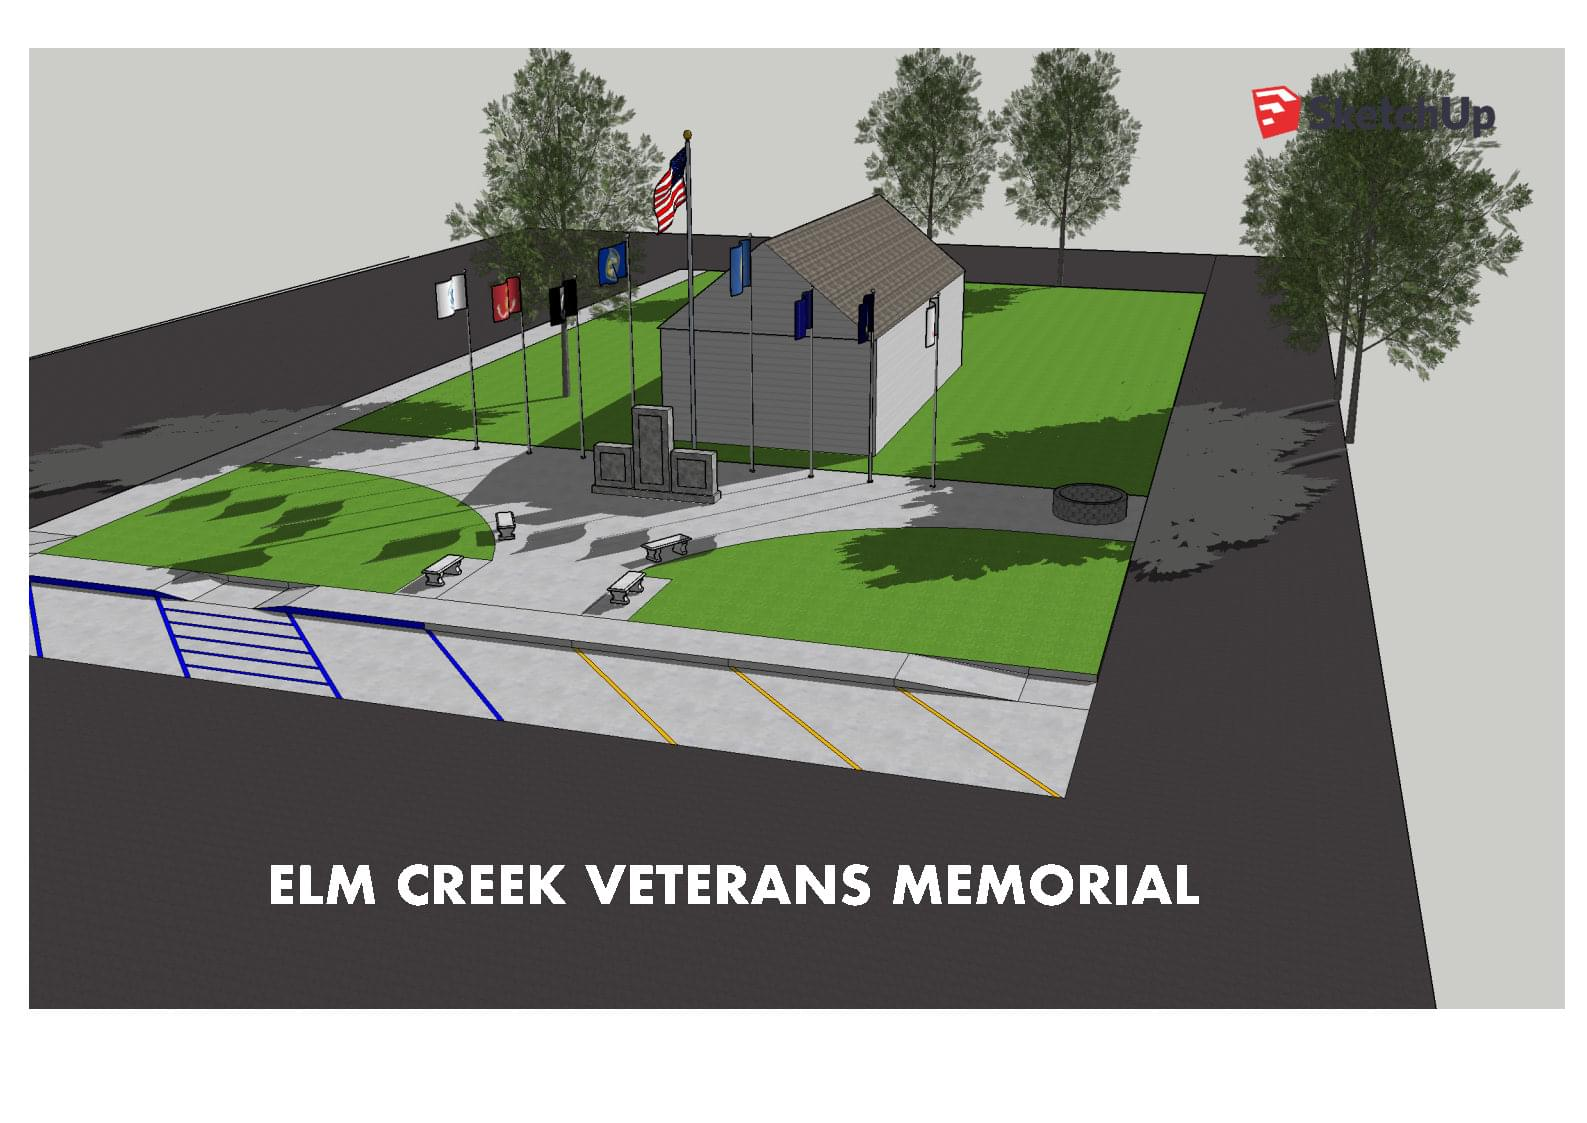 Elm Creek Veterans' Memorial Design Unveiled